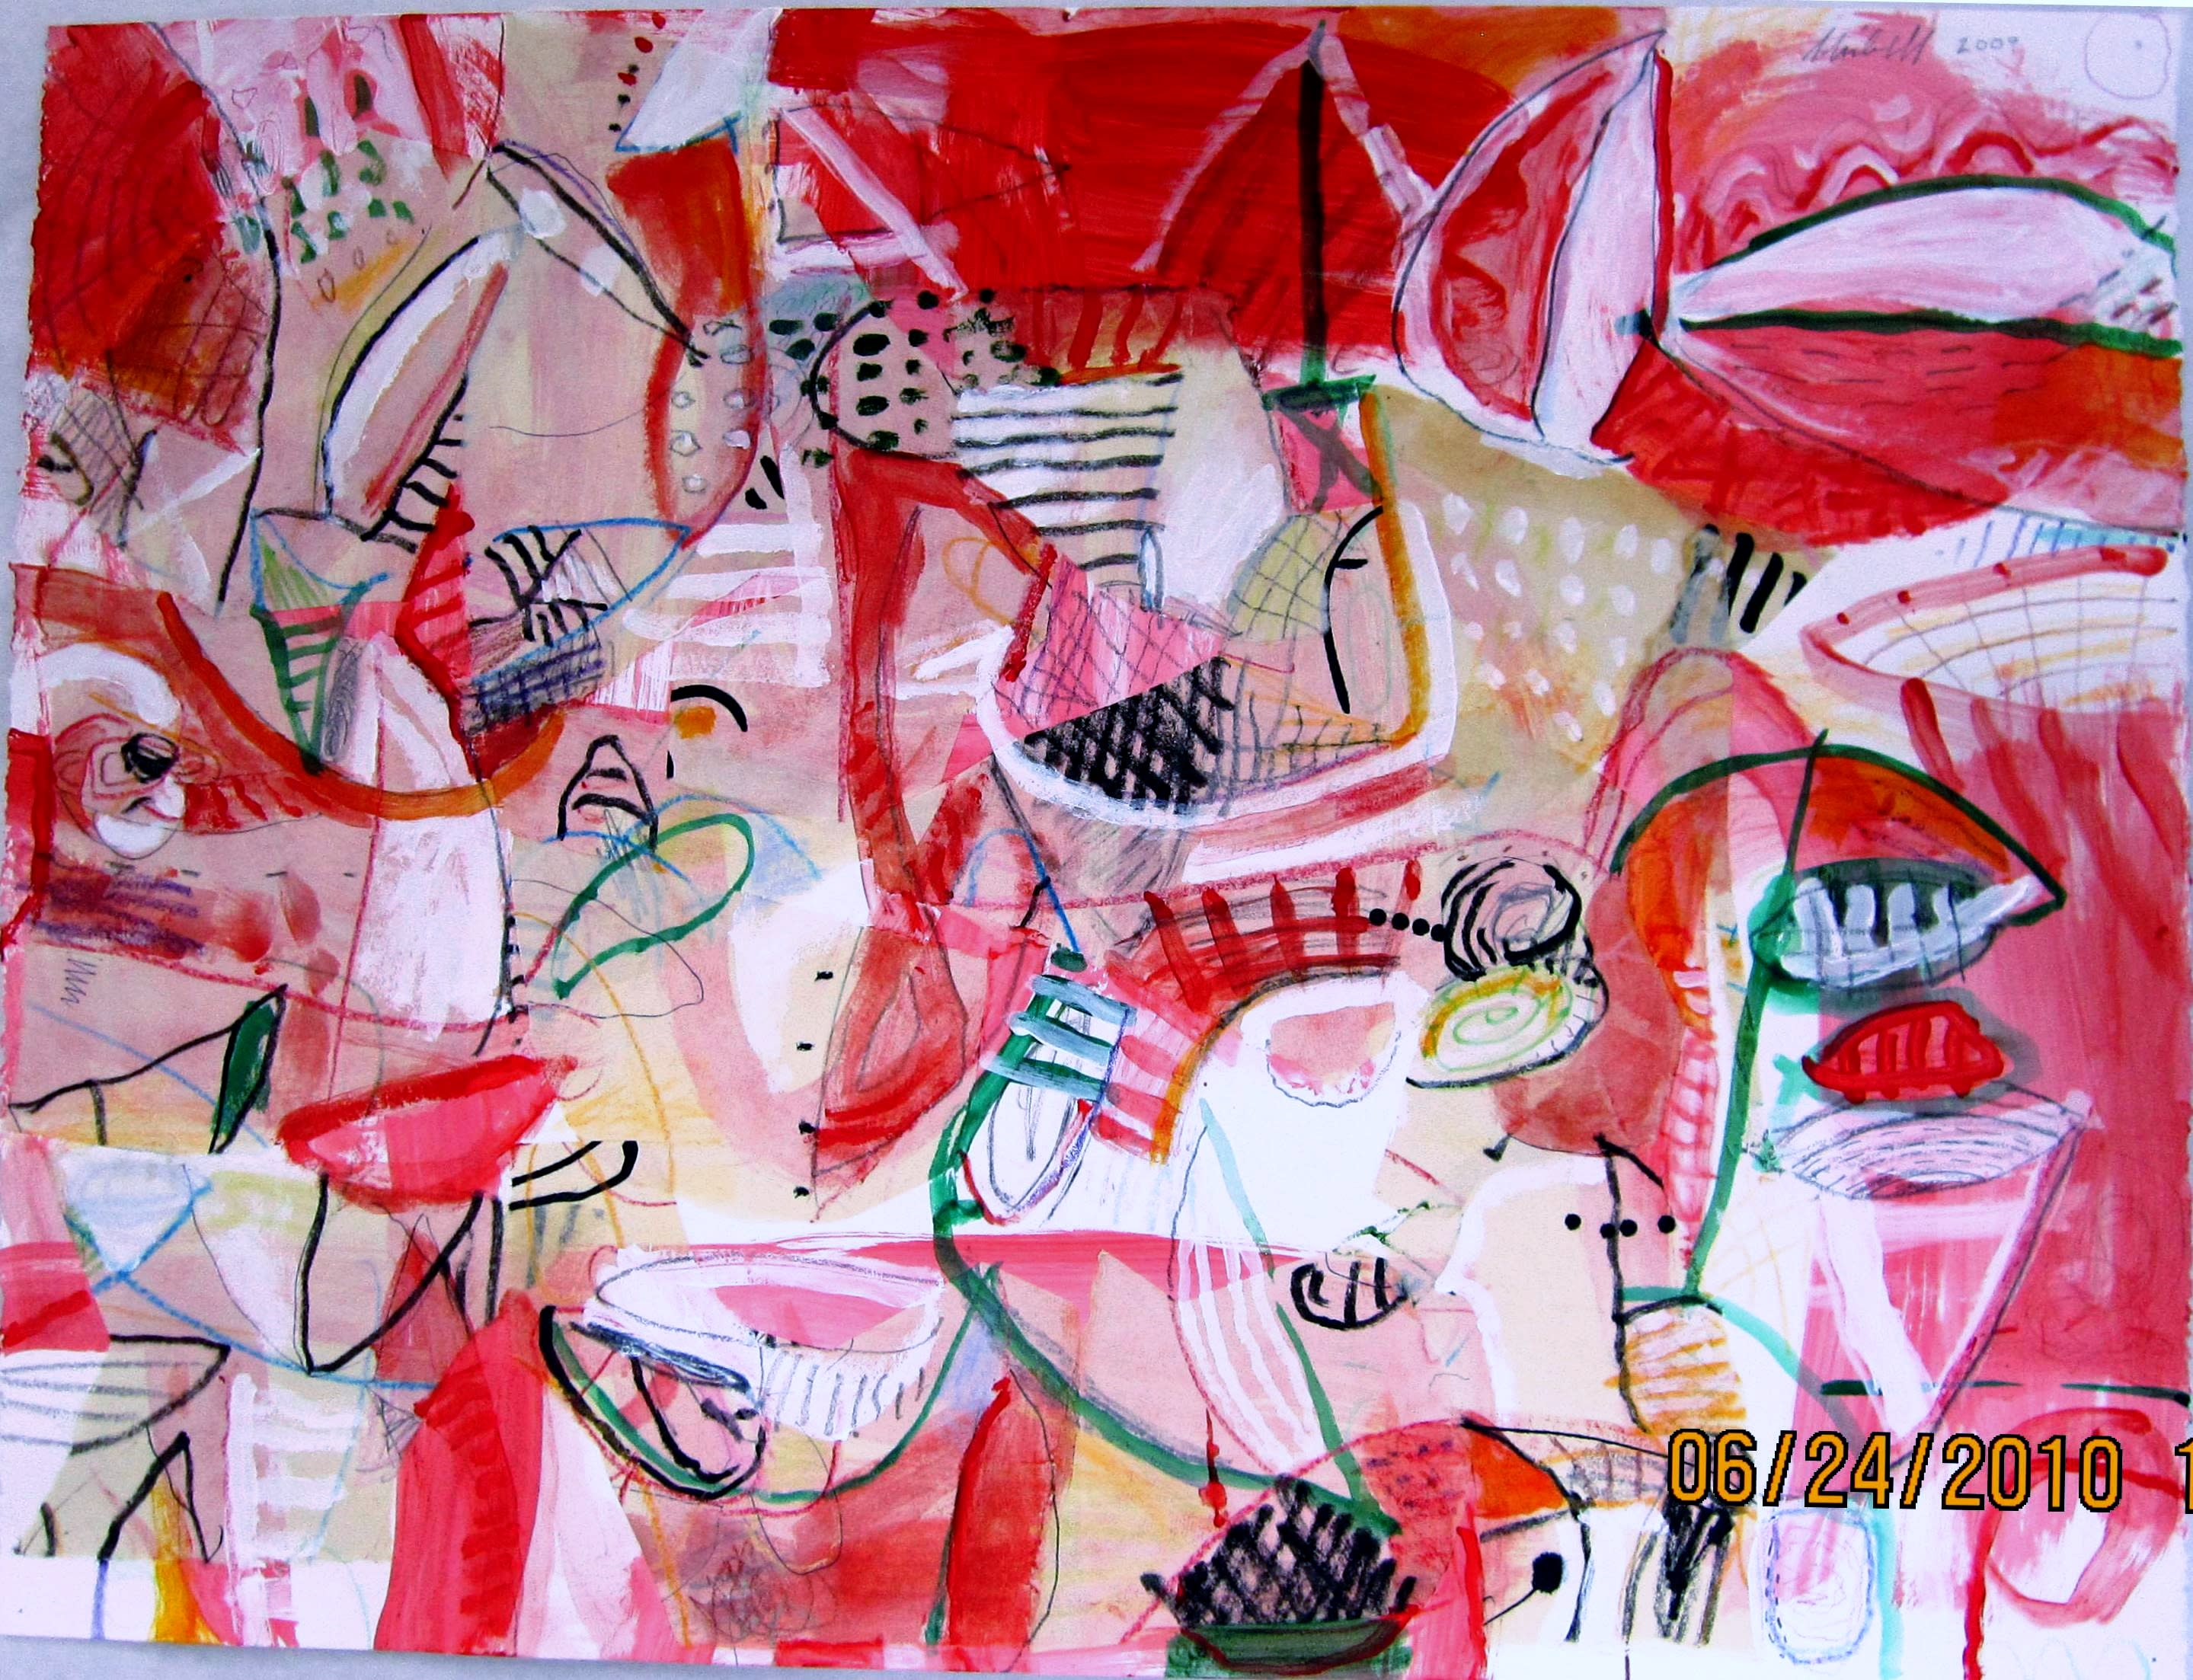 Jerry skibell red planet party collage painting on p. 20 x 26 in. 2009 sbfsqi